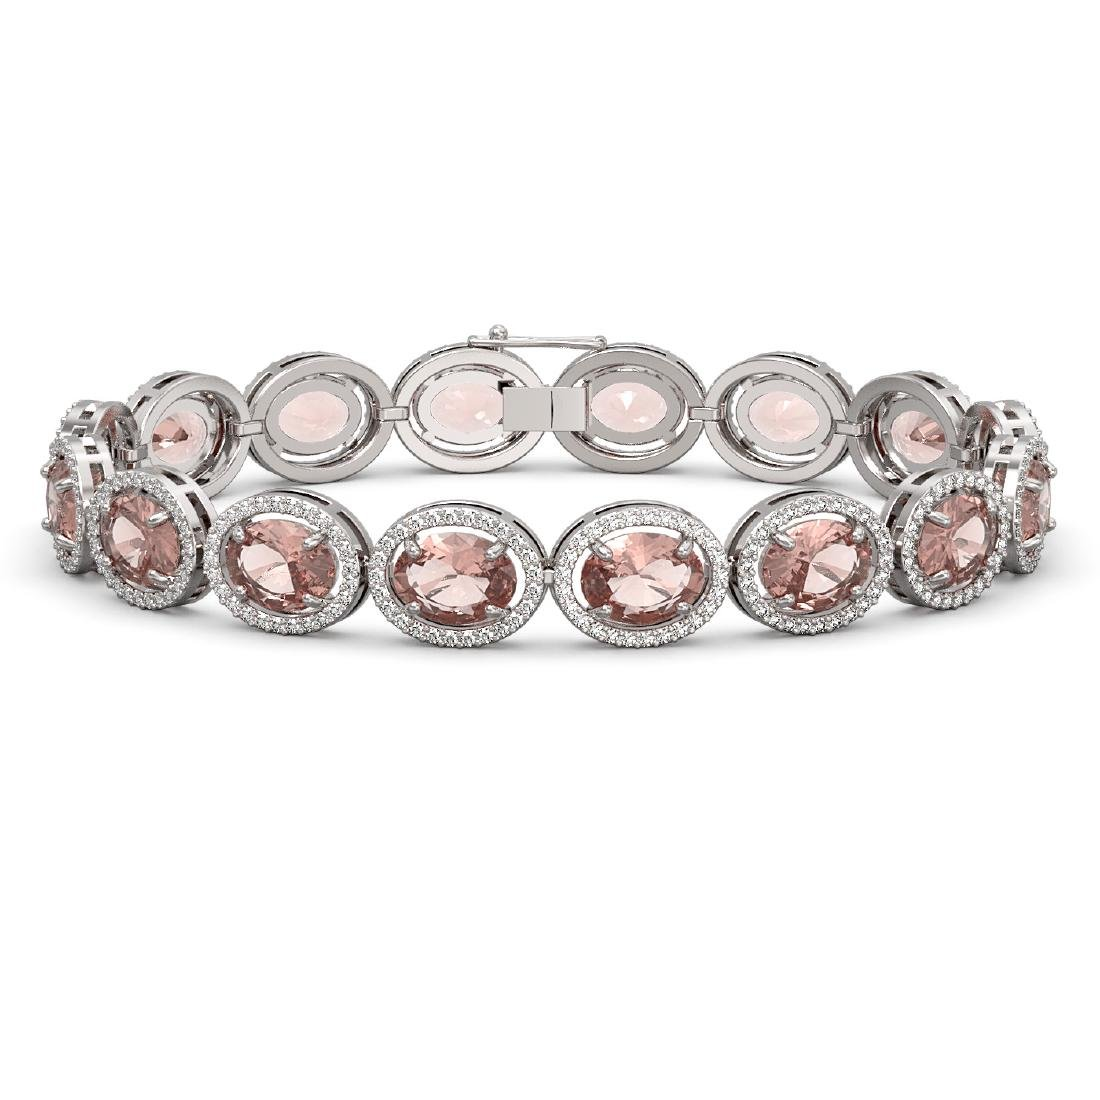 22.8 CTW Morganite & Diamond Halo Bracelet 10K White